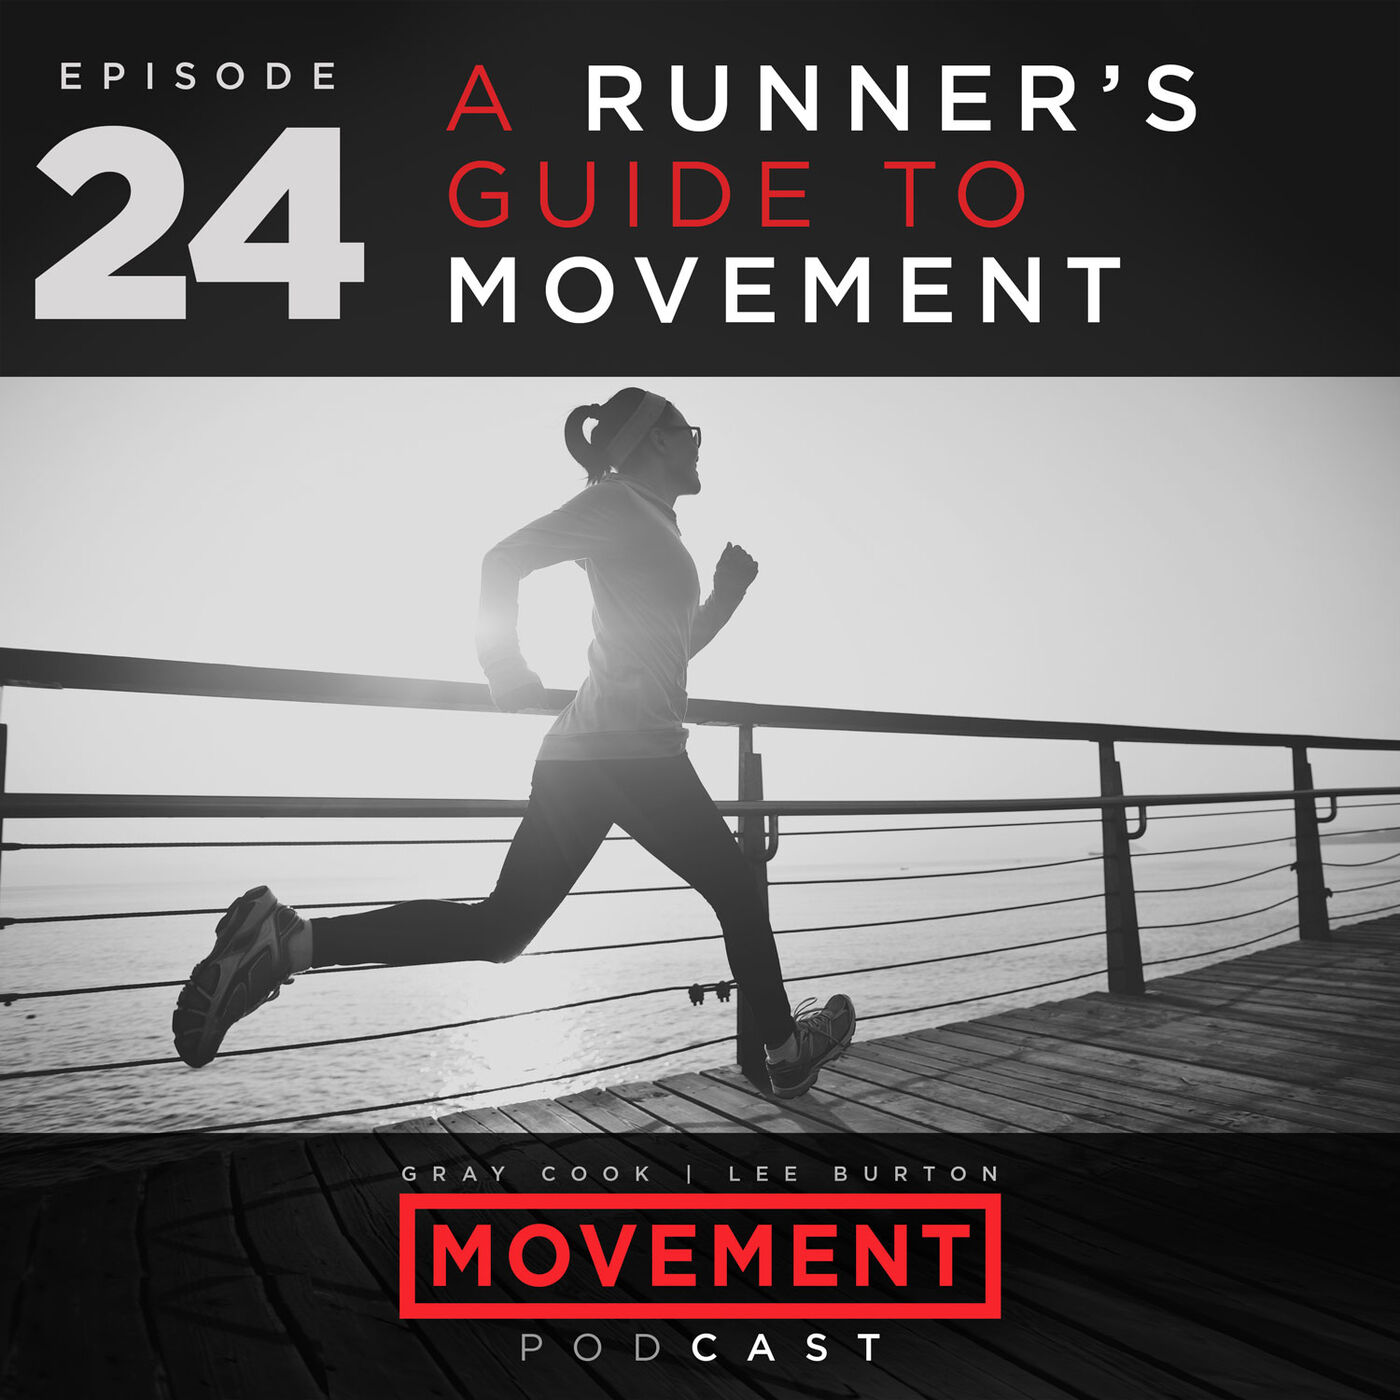 A Runner's Guide to Movement